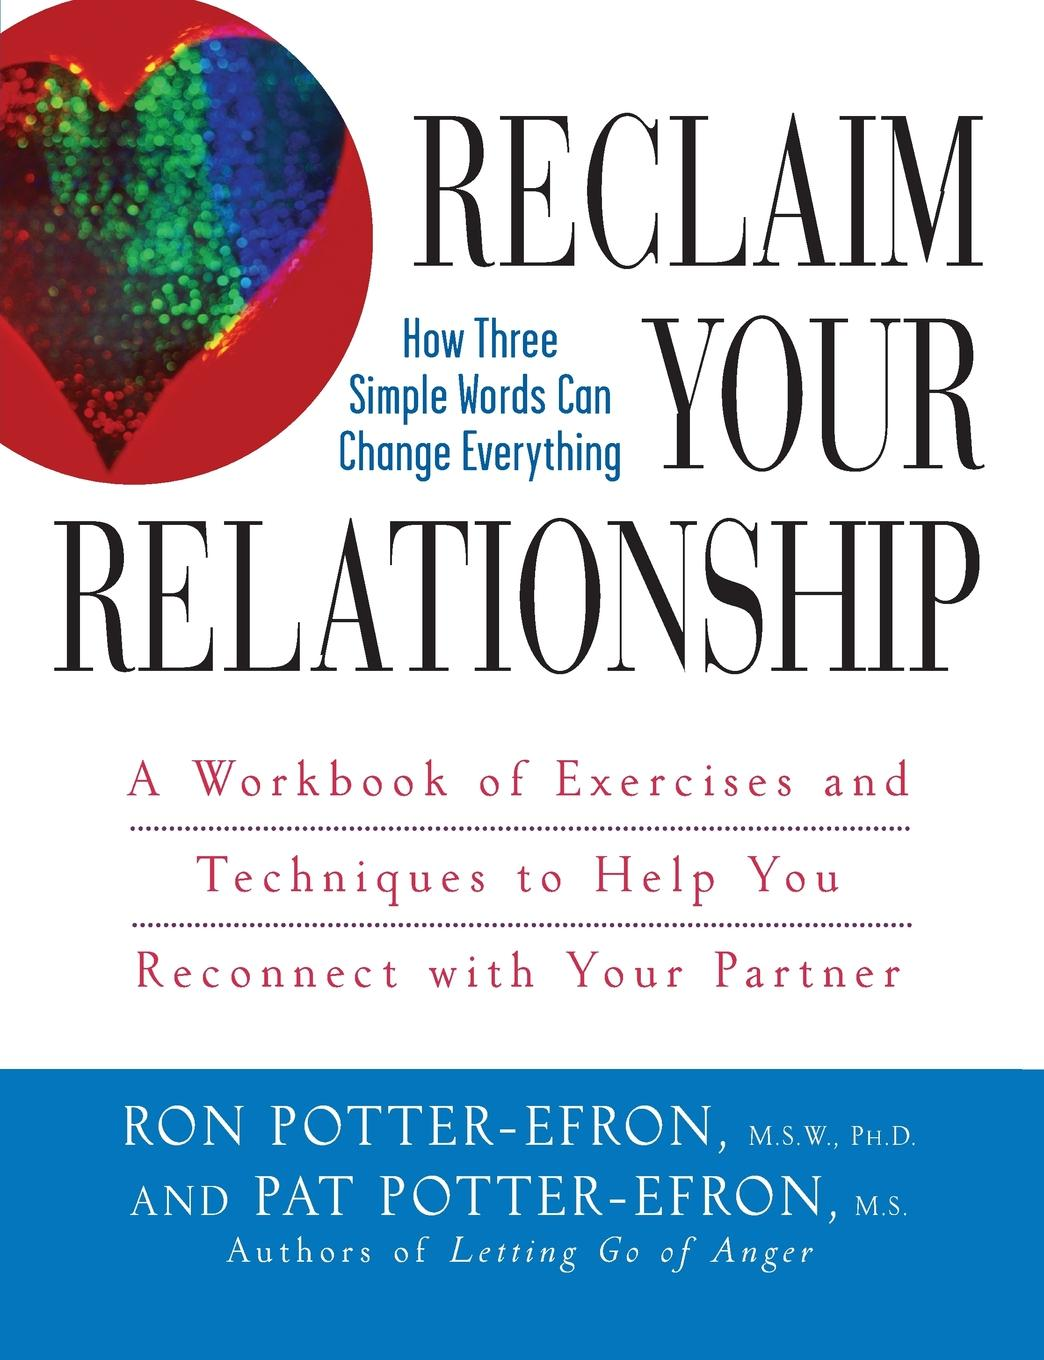 Exercises for couples to reconnect